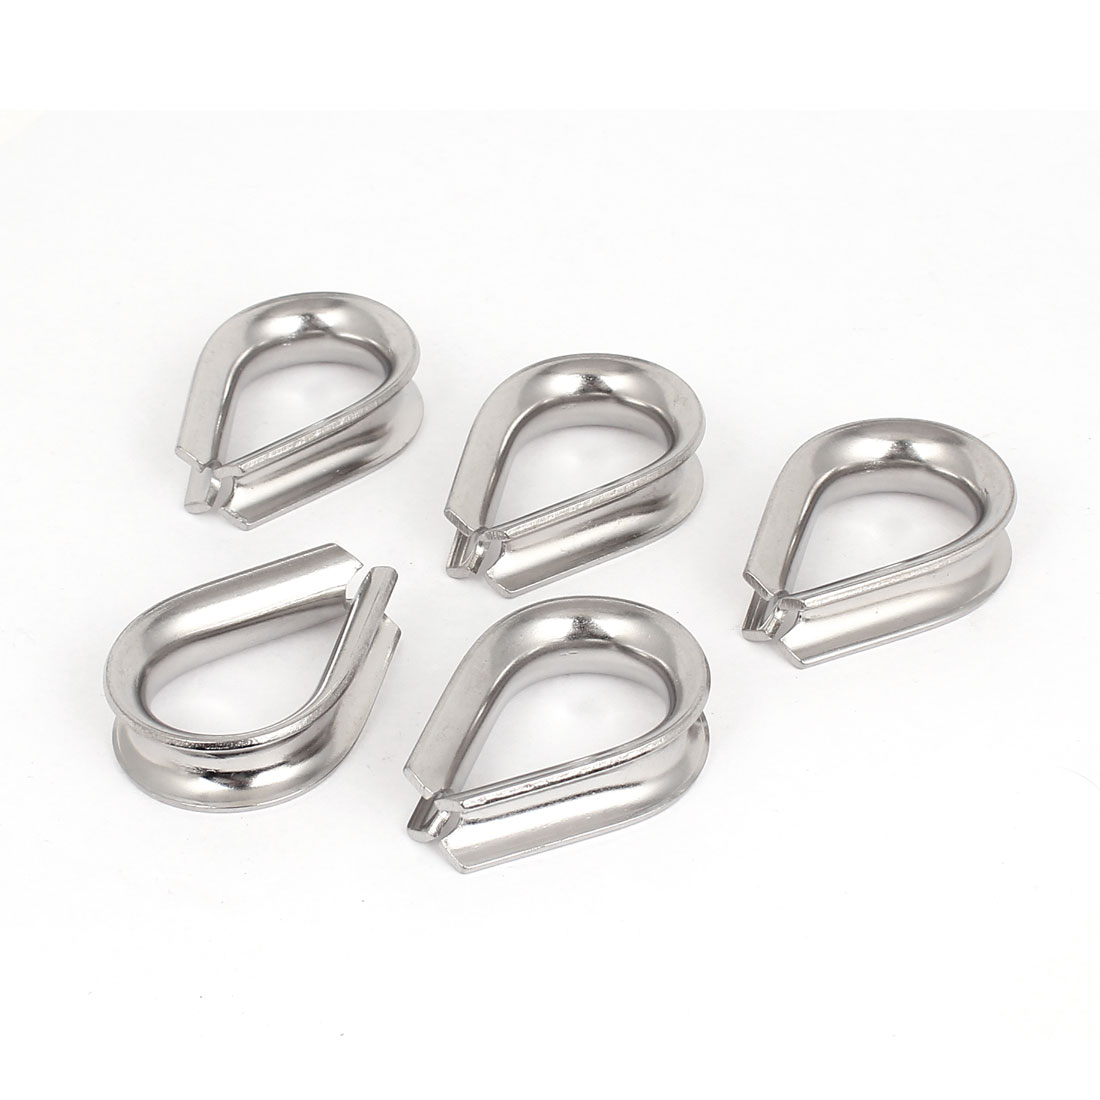 Uxcell Stainless Steel 10mm 3/8